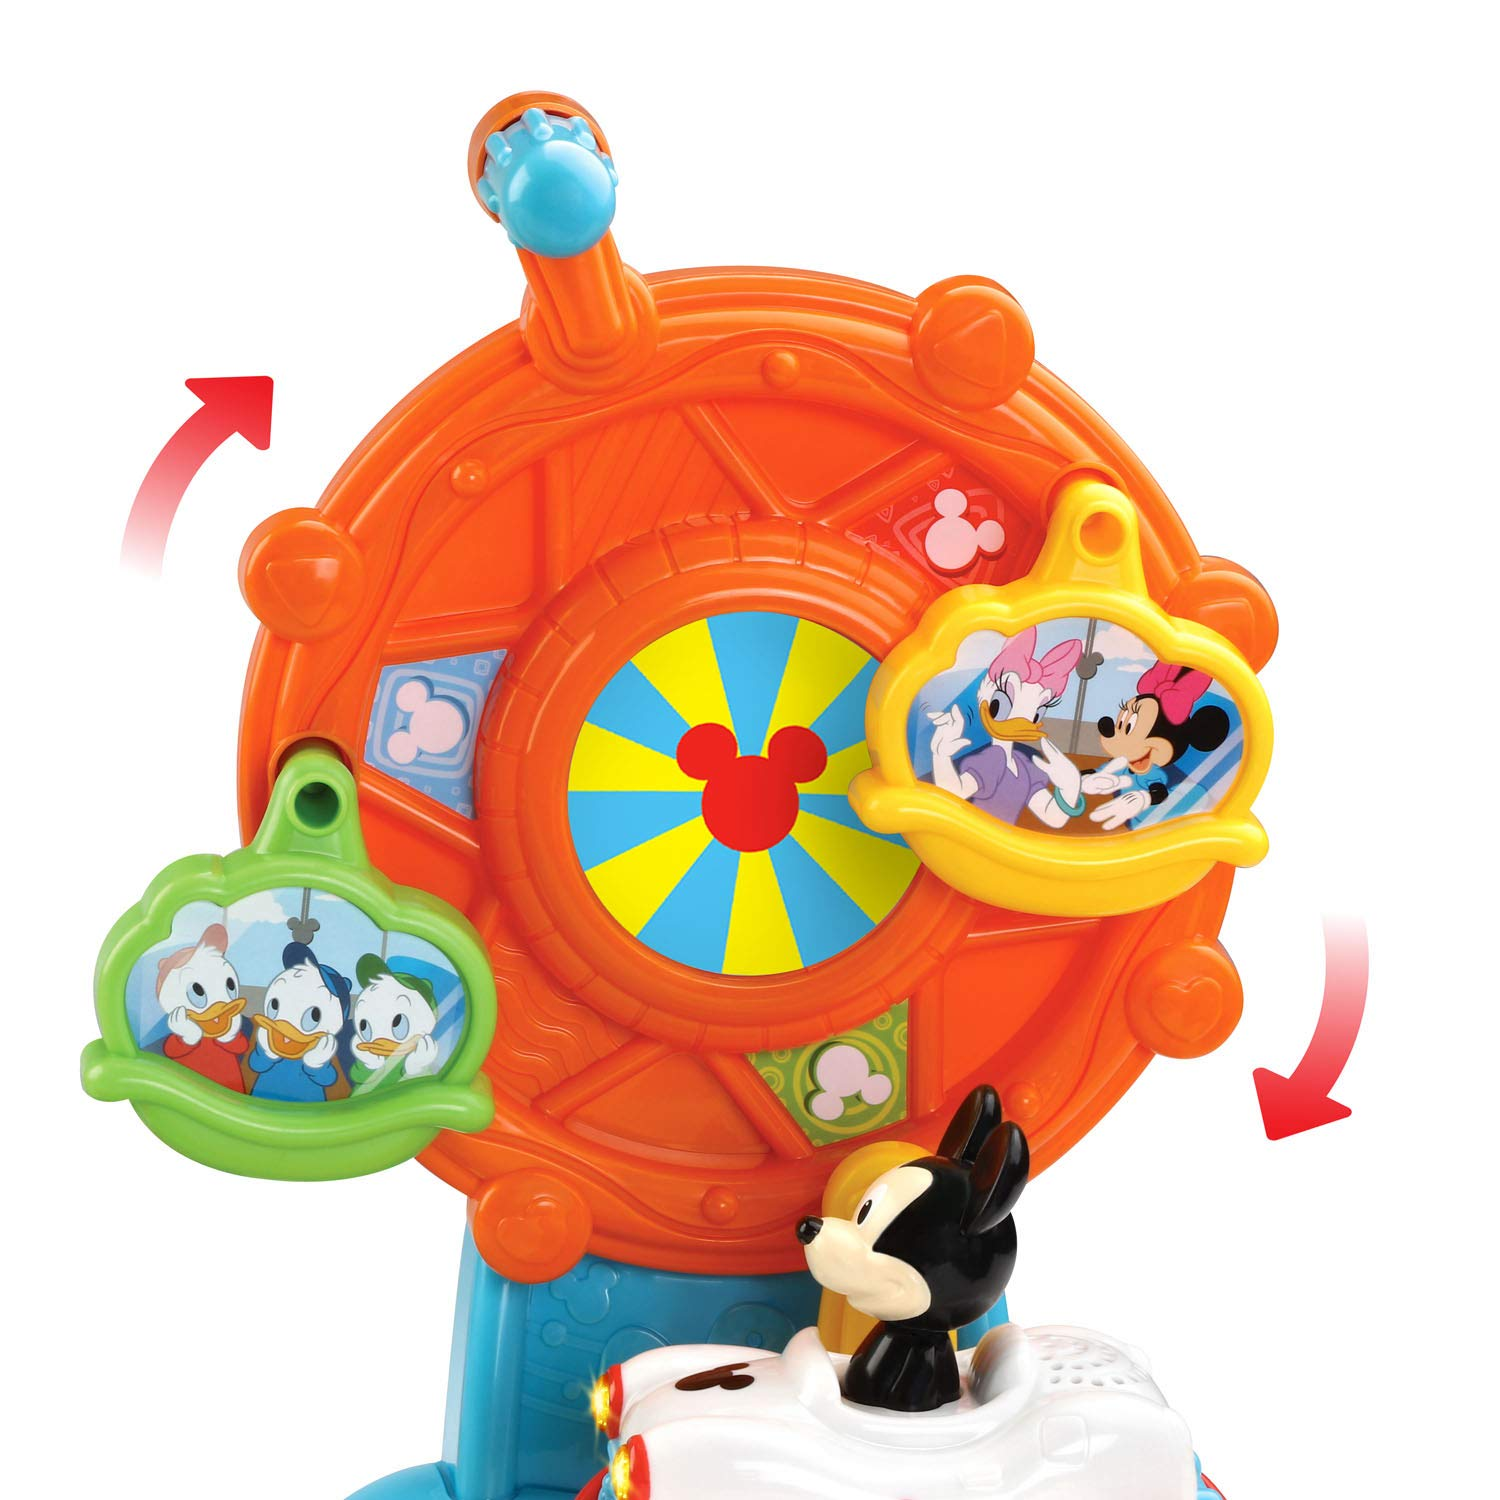 VTech Go! Go! Smart Wheels Mickey Mouse Magical Wonderland, Multicolor by VTech (Image #5)